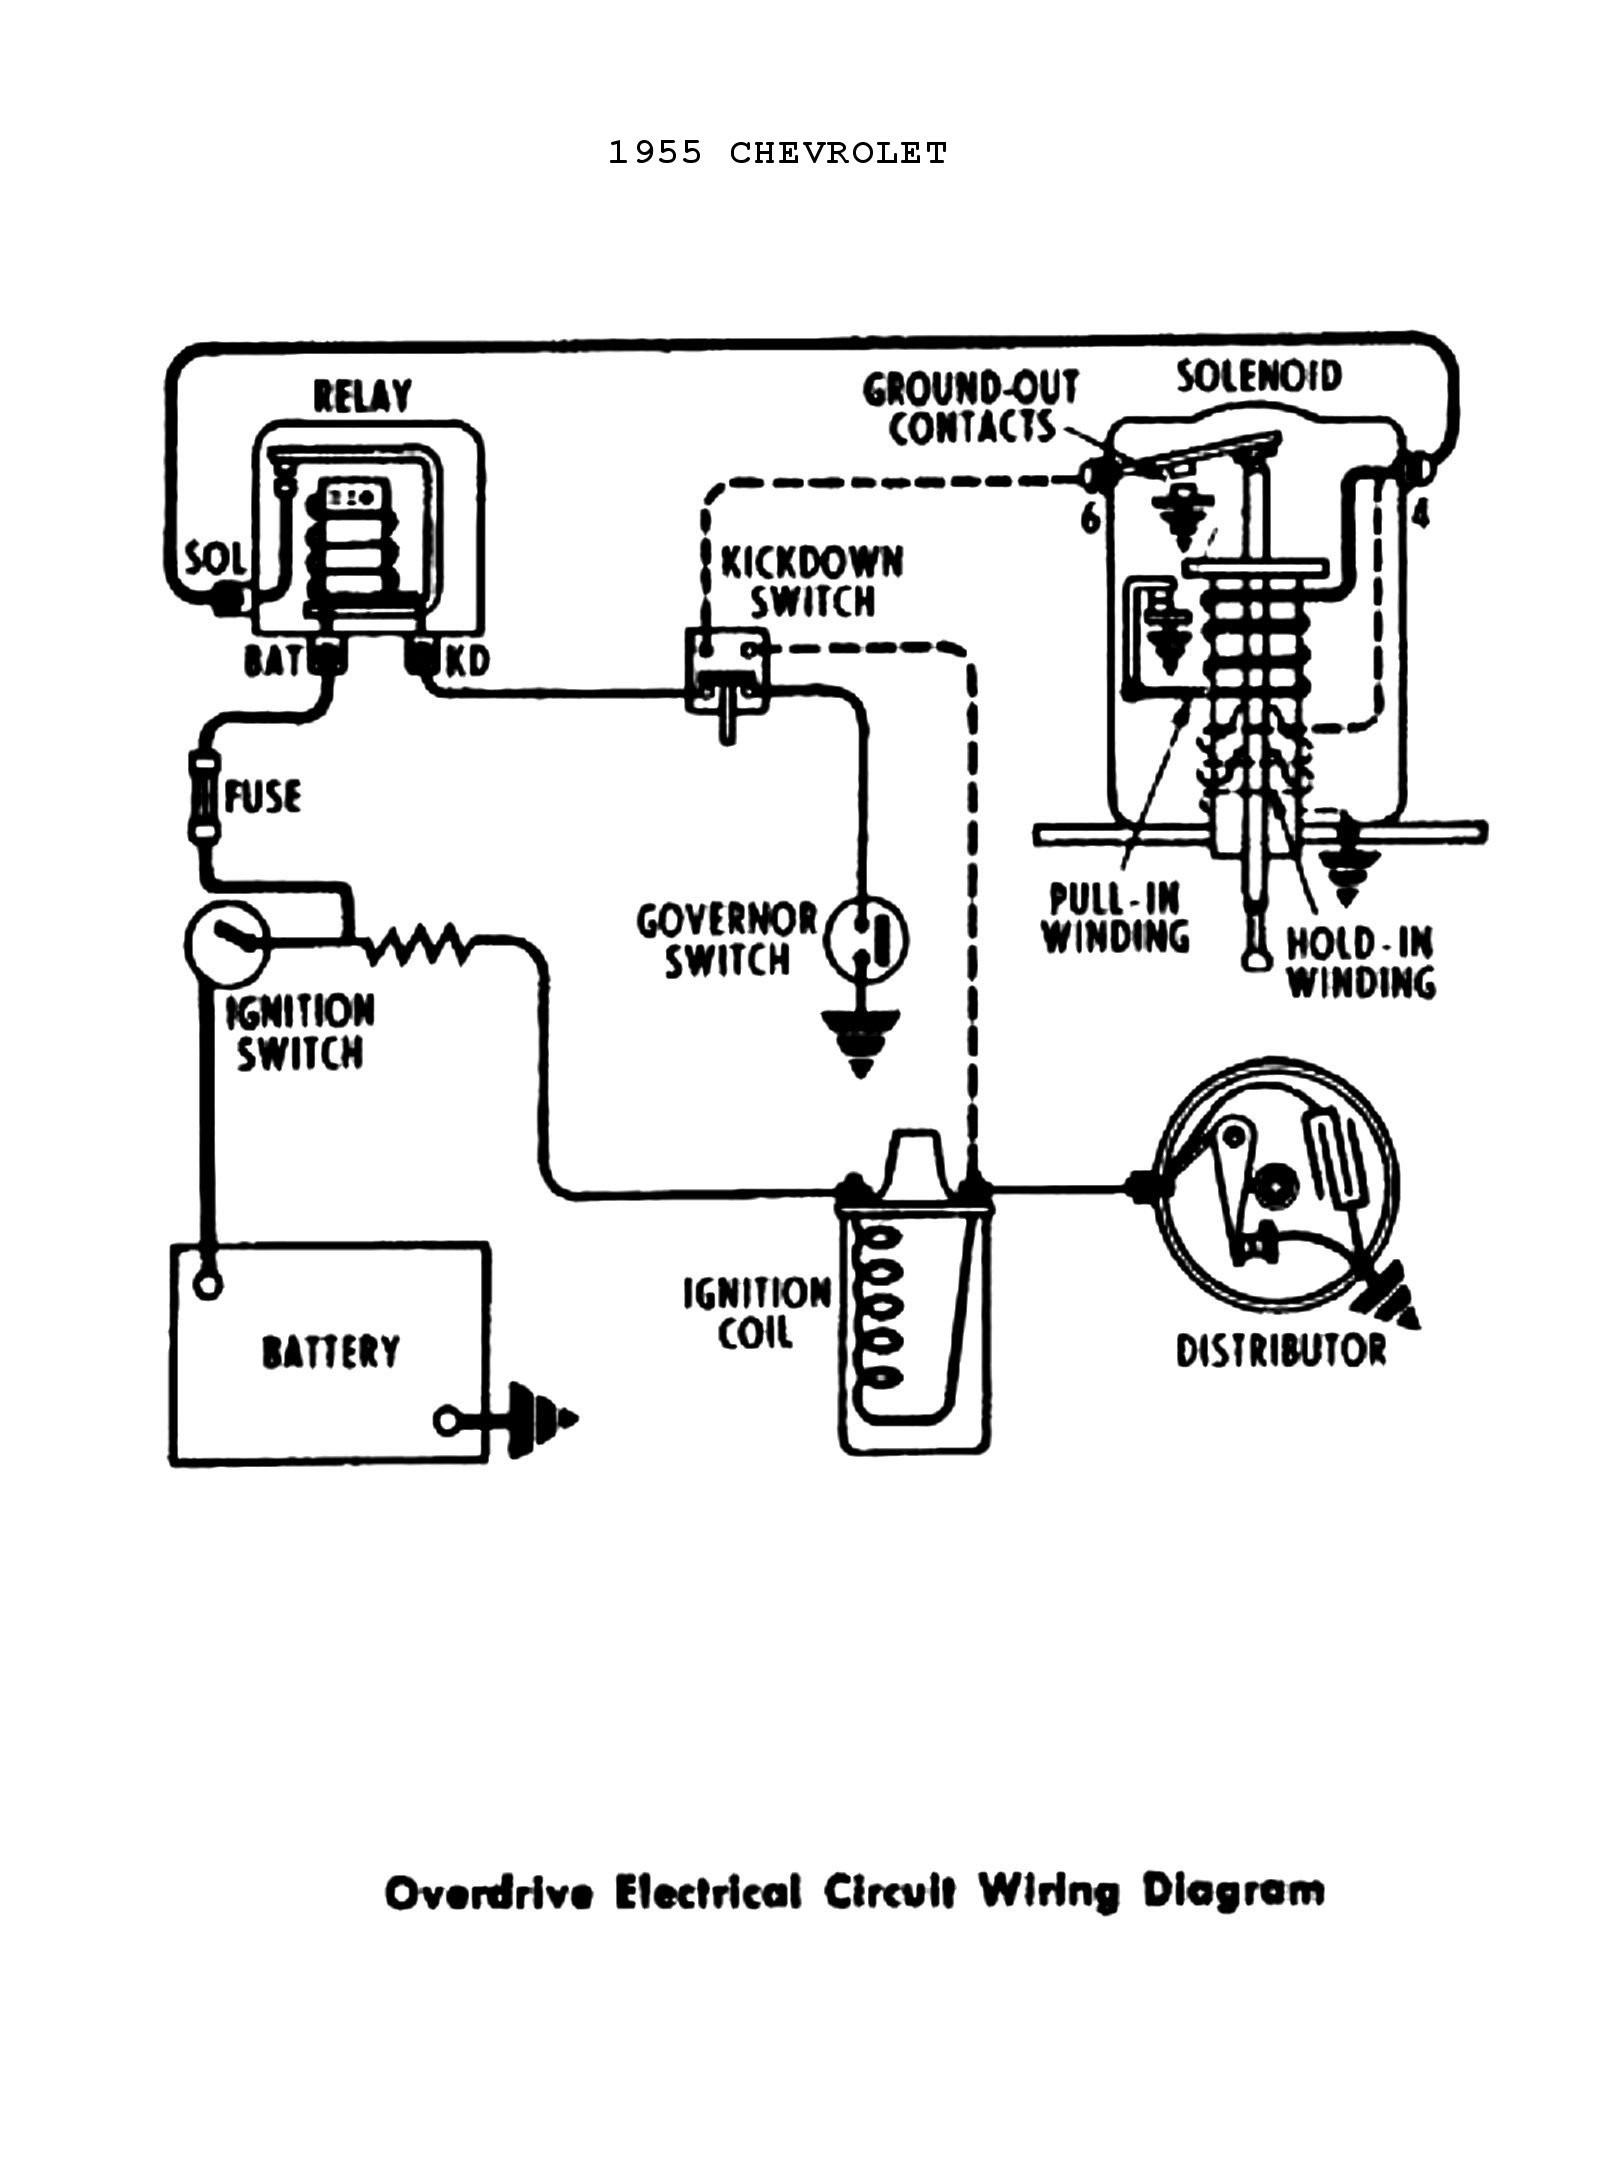 Exelent thermopile wiring diagrams embellishment electrical